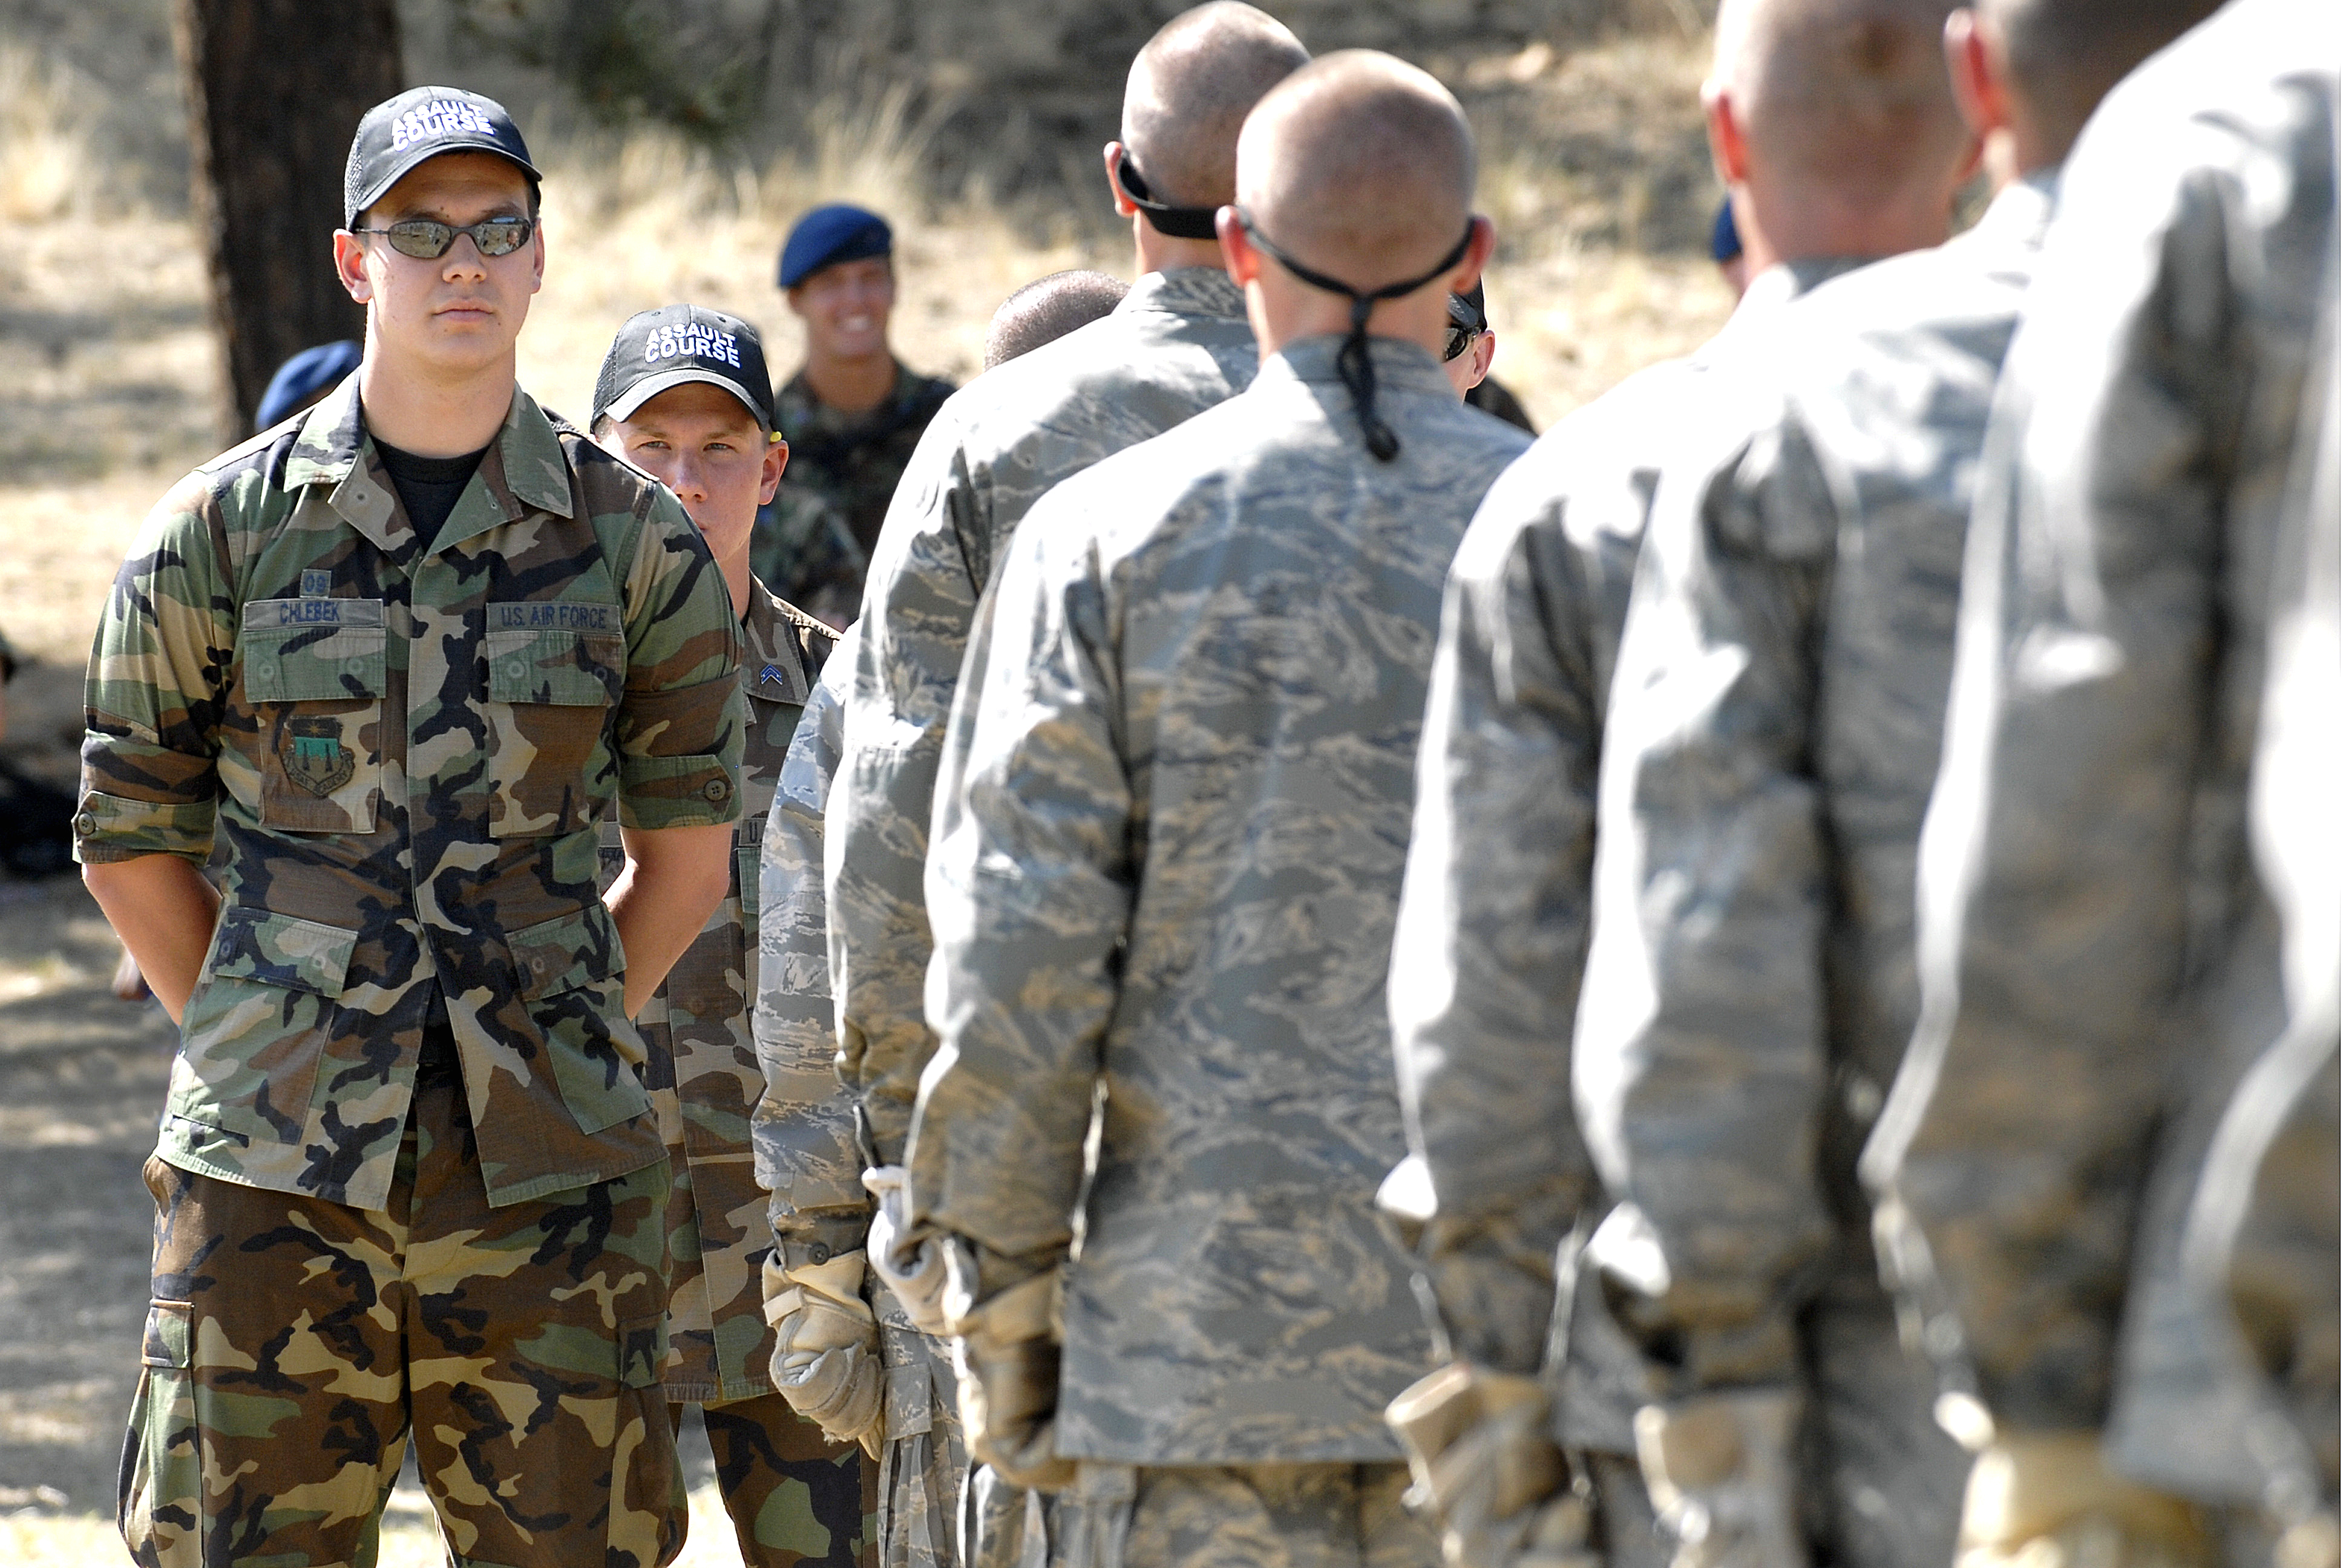 females in the united states military essay Israel vs united states military  number of males and females entering the military manpower  com/country-info/compare/israel/united-states/military.